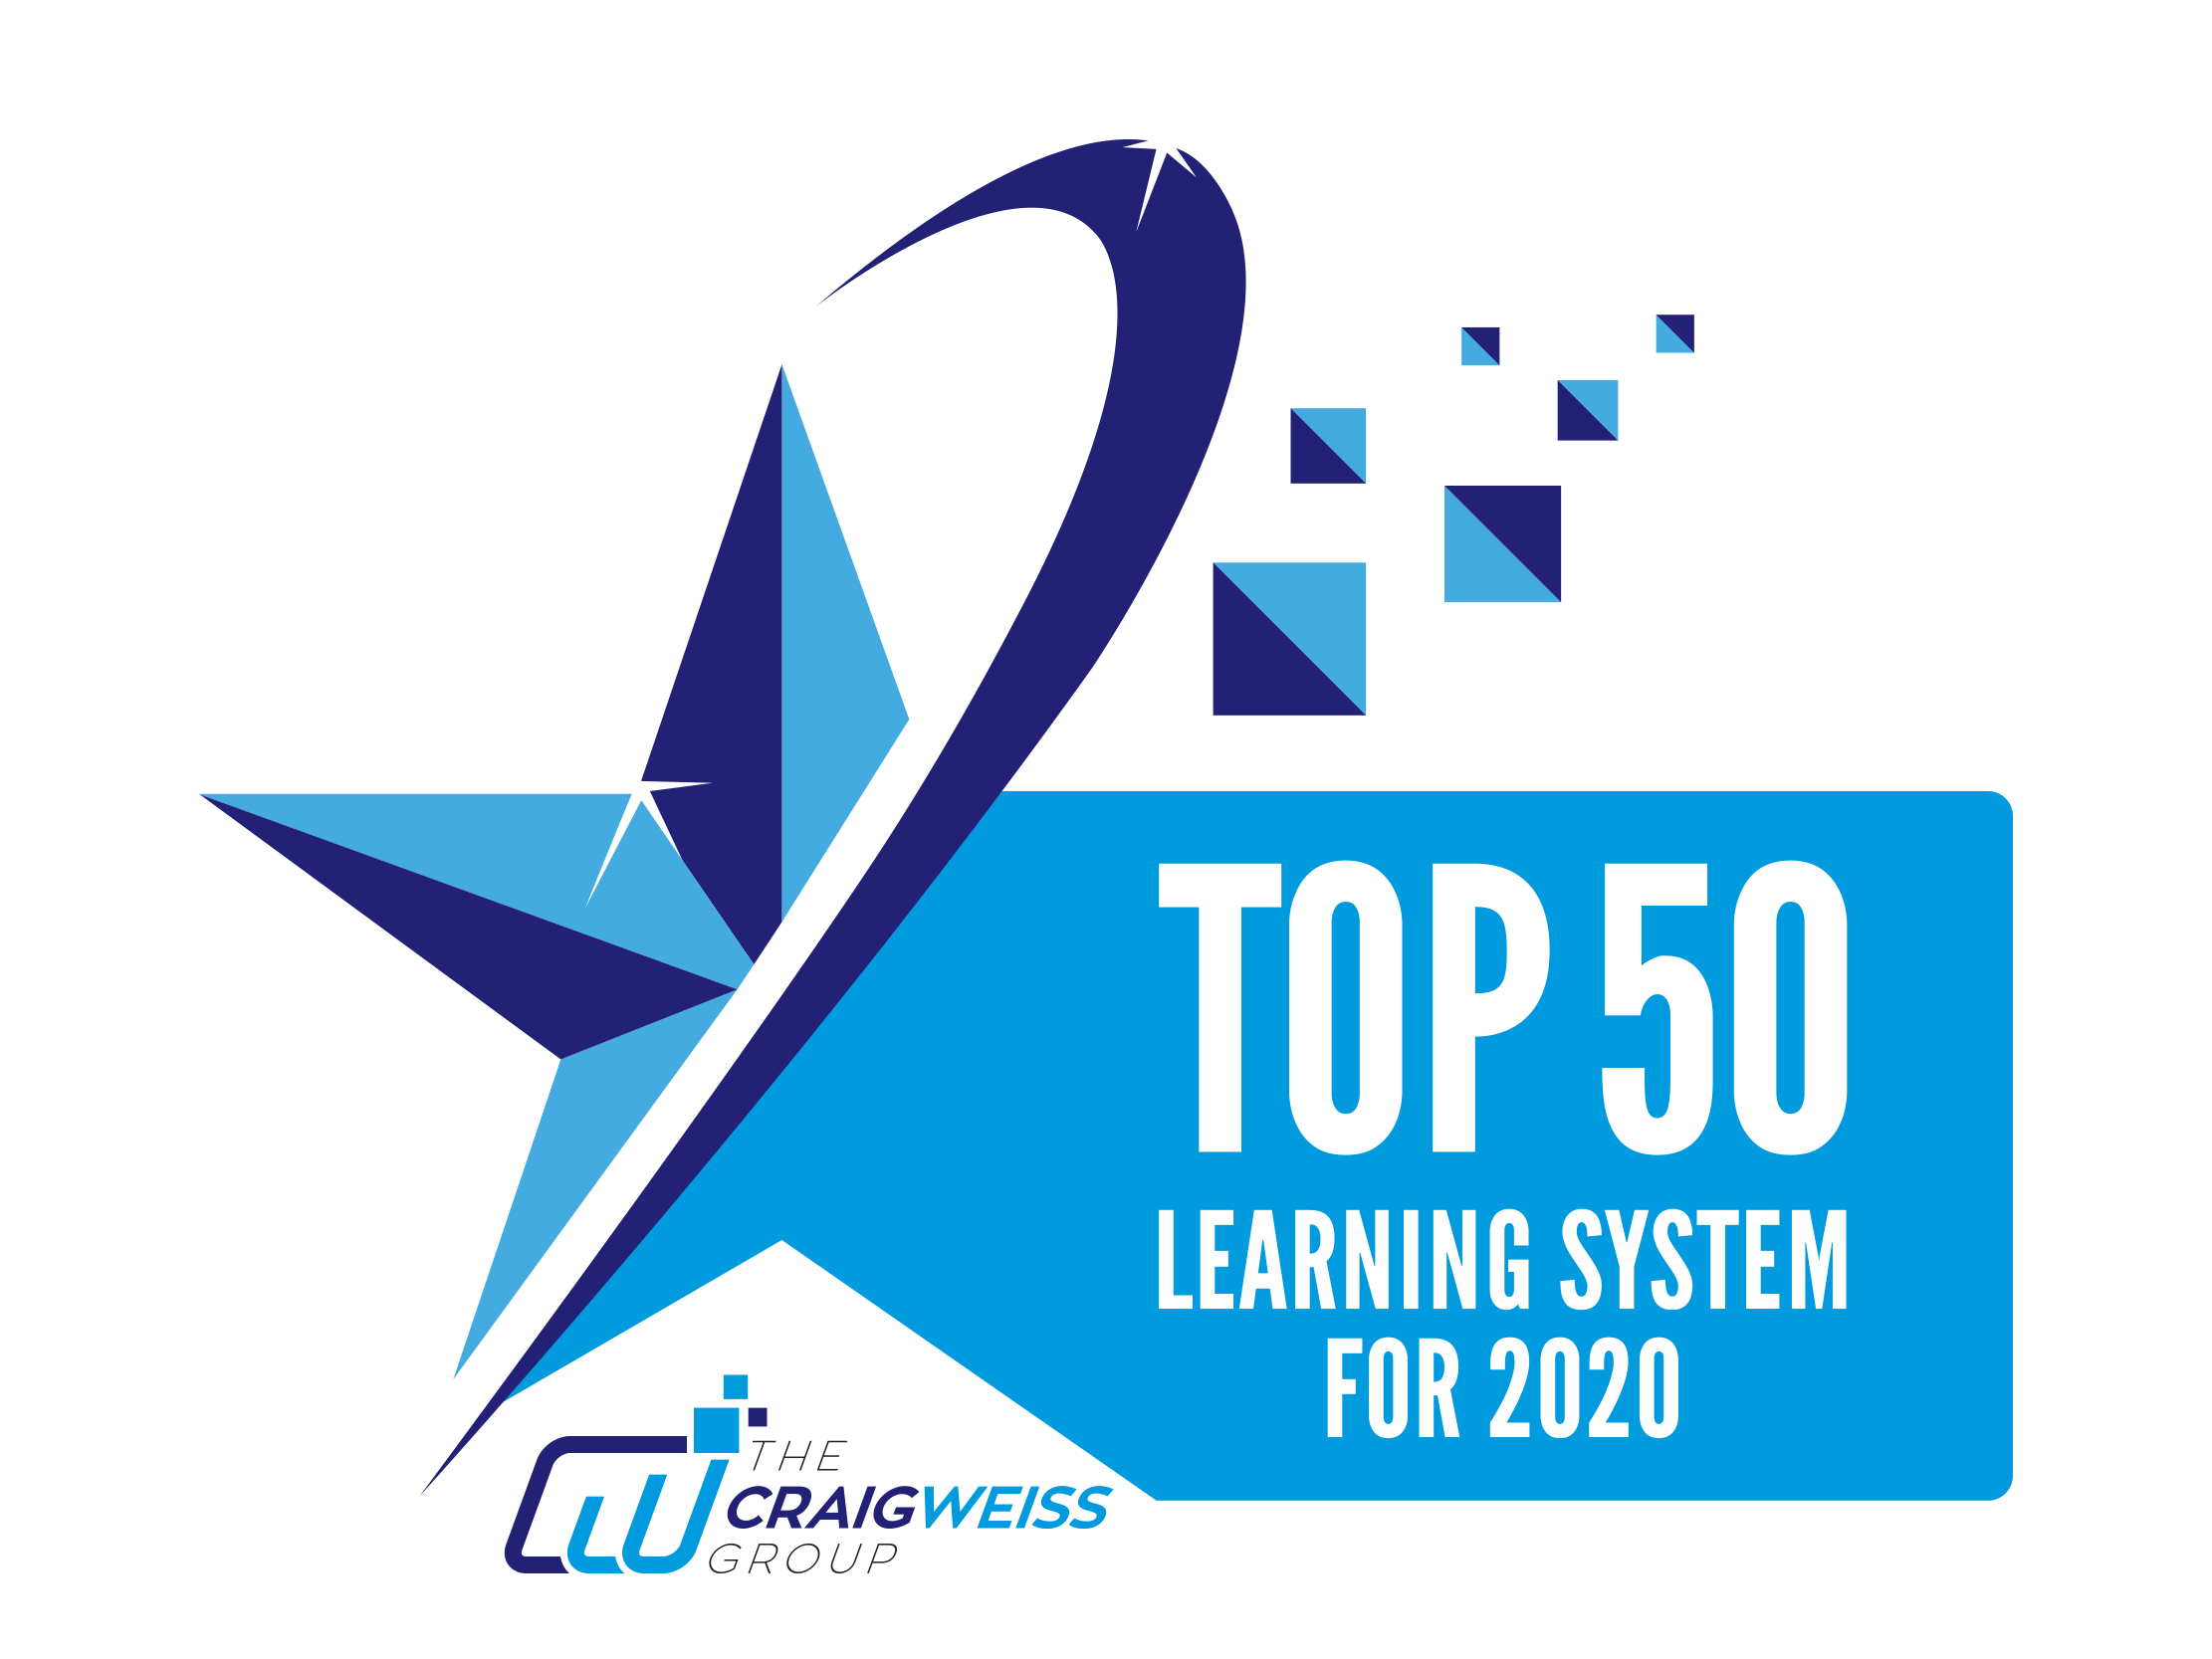 Top 50 Learning System for 2020 Award - The Craig Weiss Group